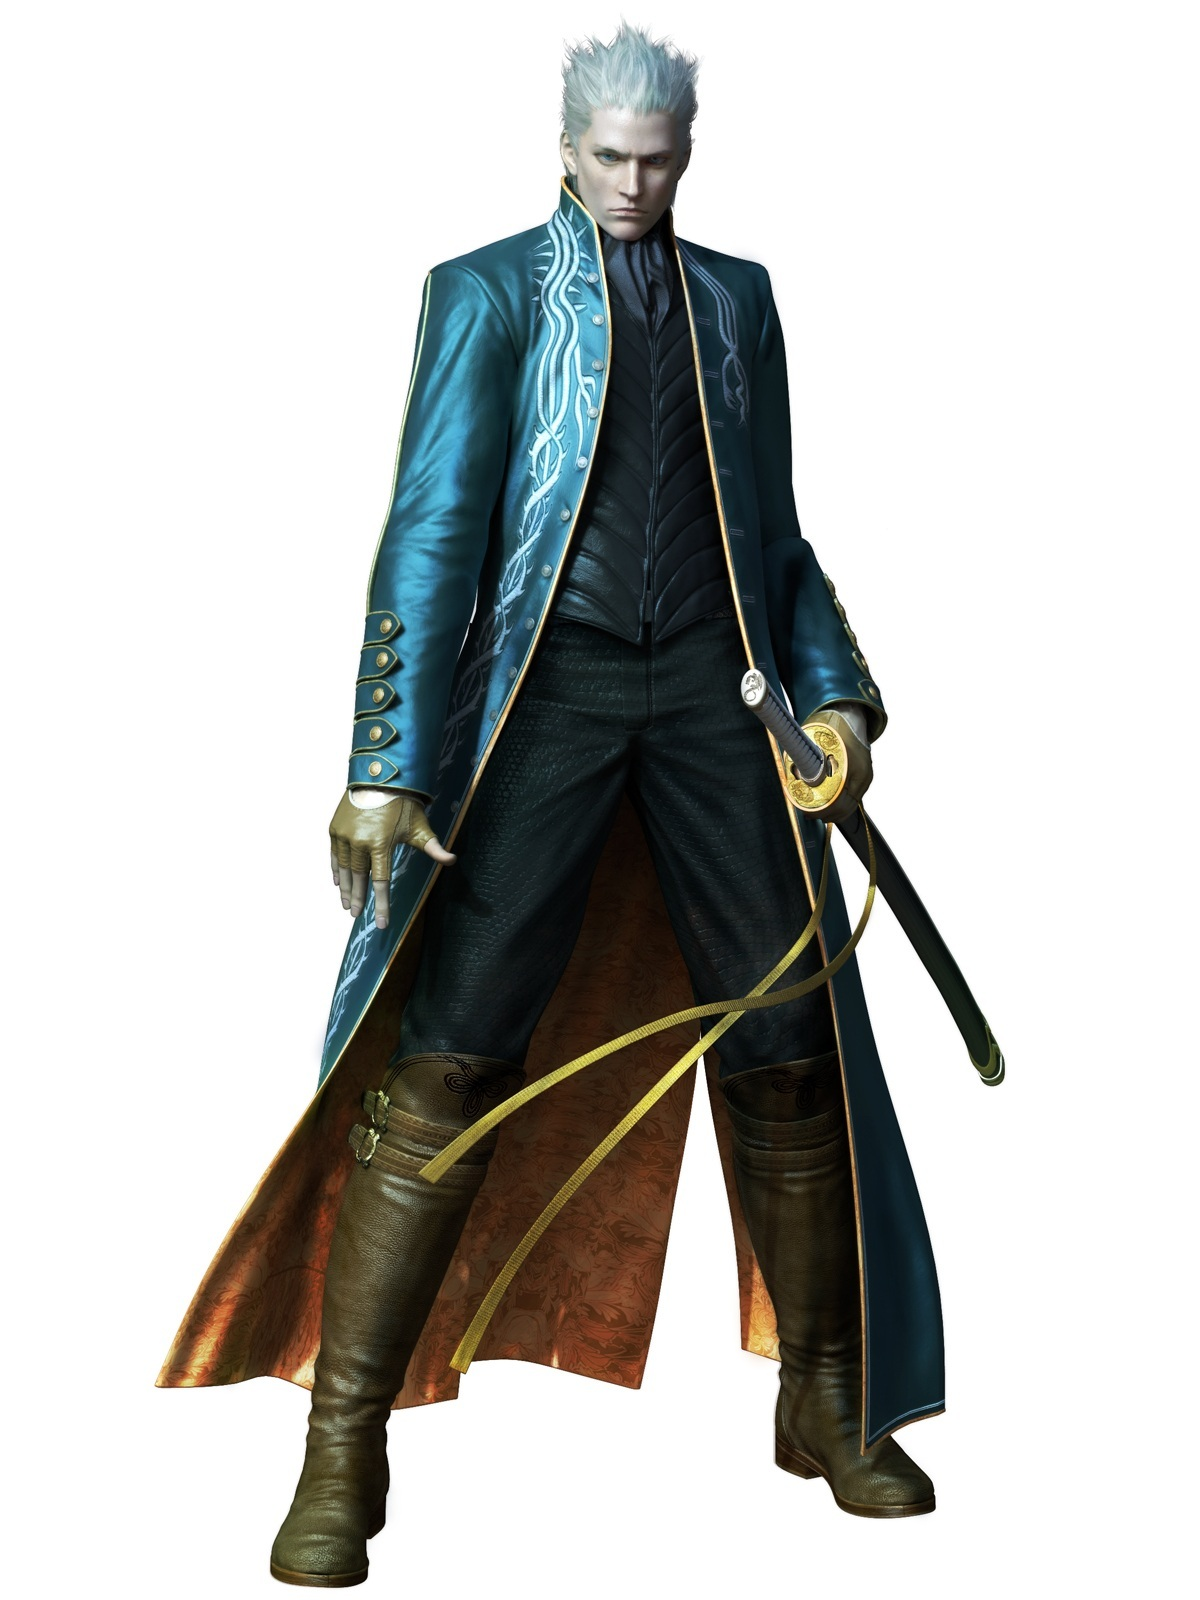 http://img2.wikia.nocookie.net/__cb20121006223350/villains/images/a/a6/Vergil_%28Devil_May_Cry%29.jpg